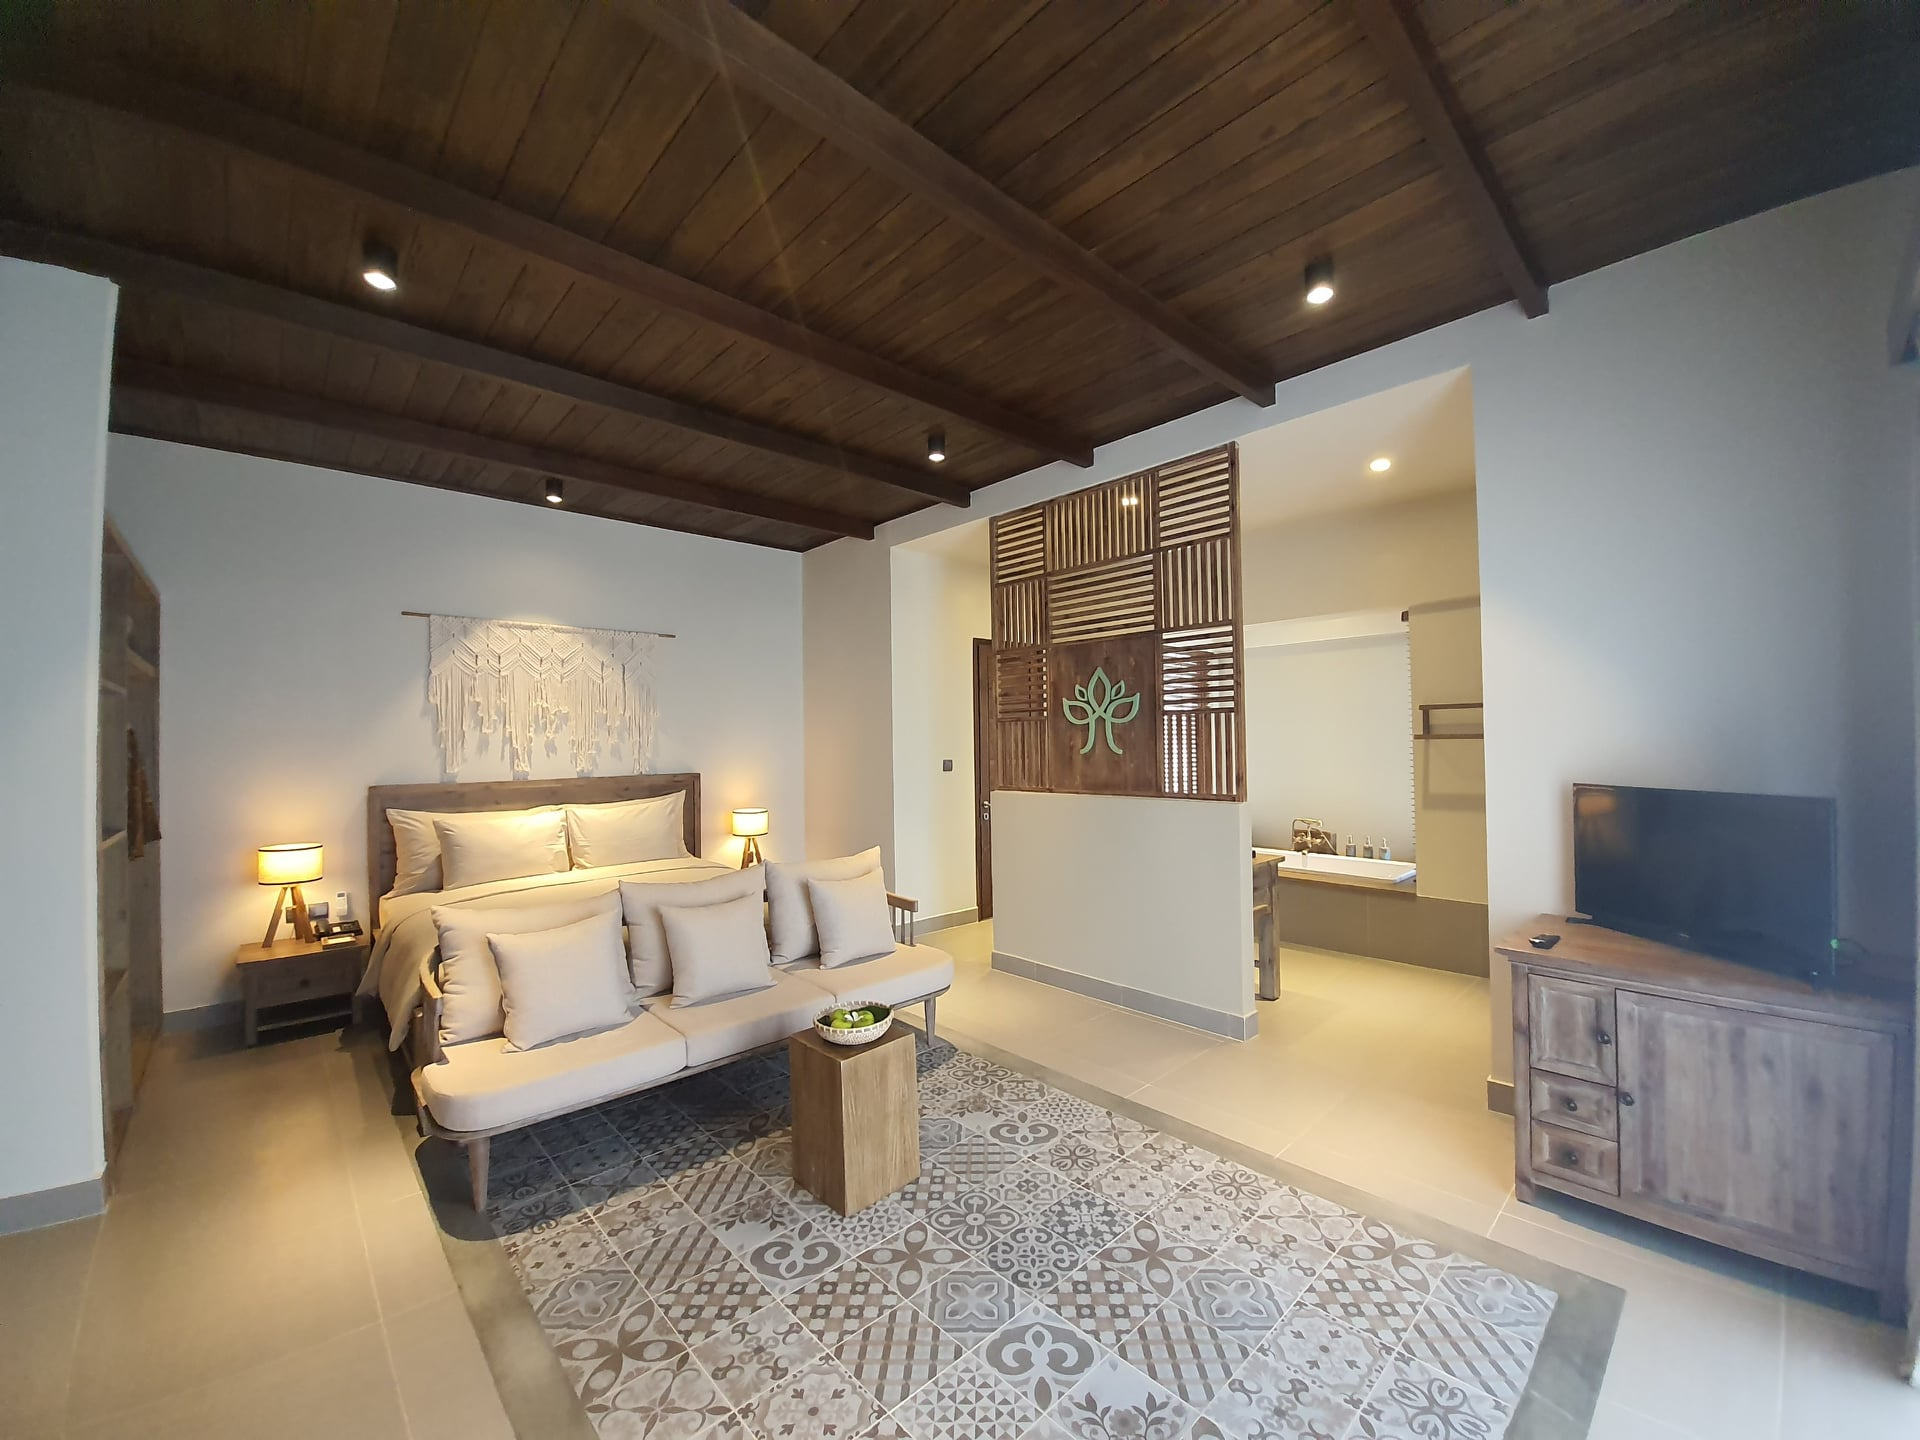 Room decoration with eco-friendly materials at Crown Retreat in Quy Nhon, Vietnam